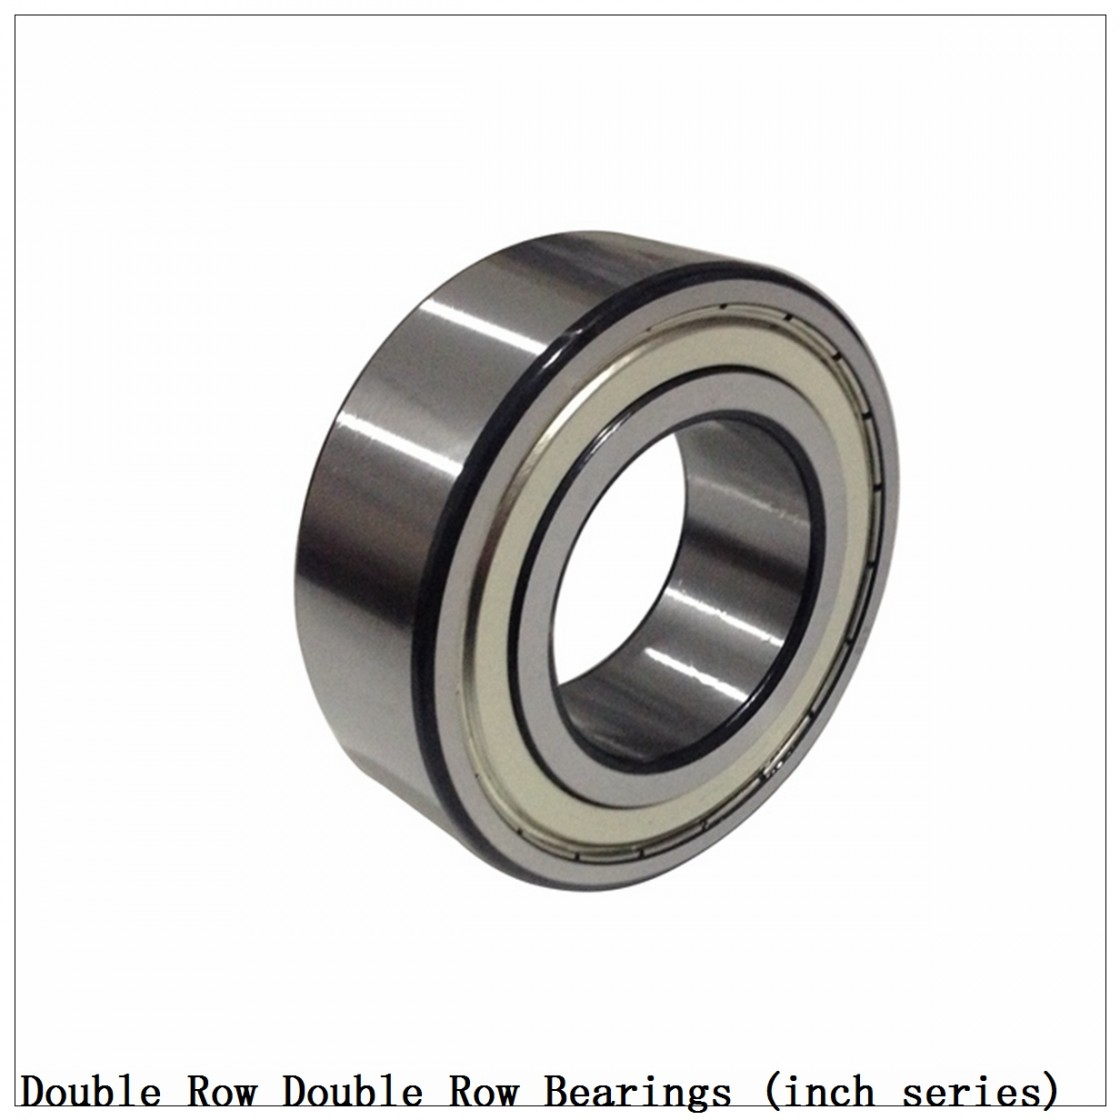 H239649D/H239612 Double row double row bearings (inch series)